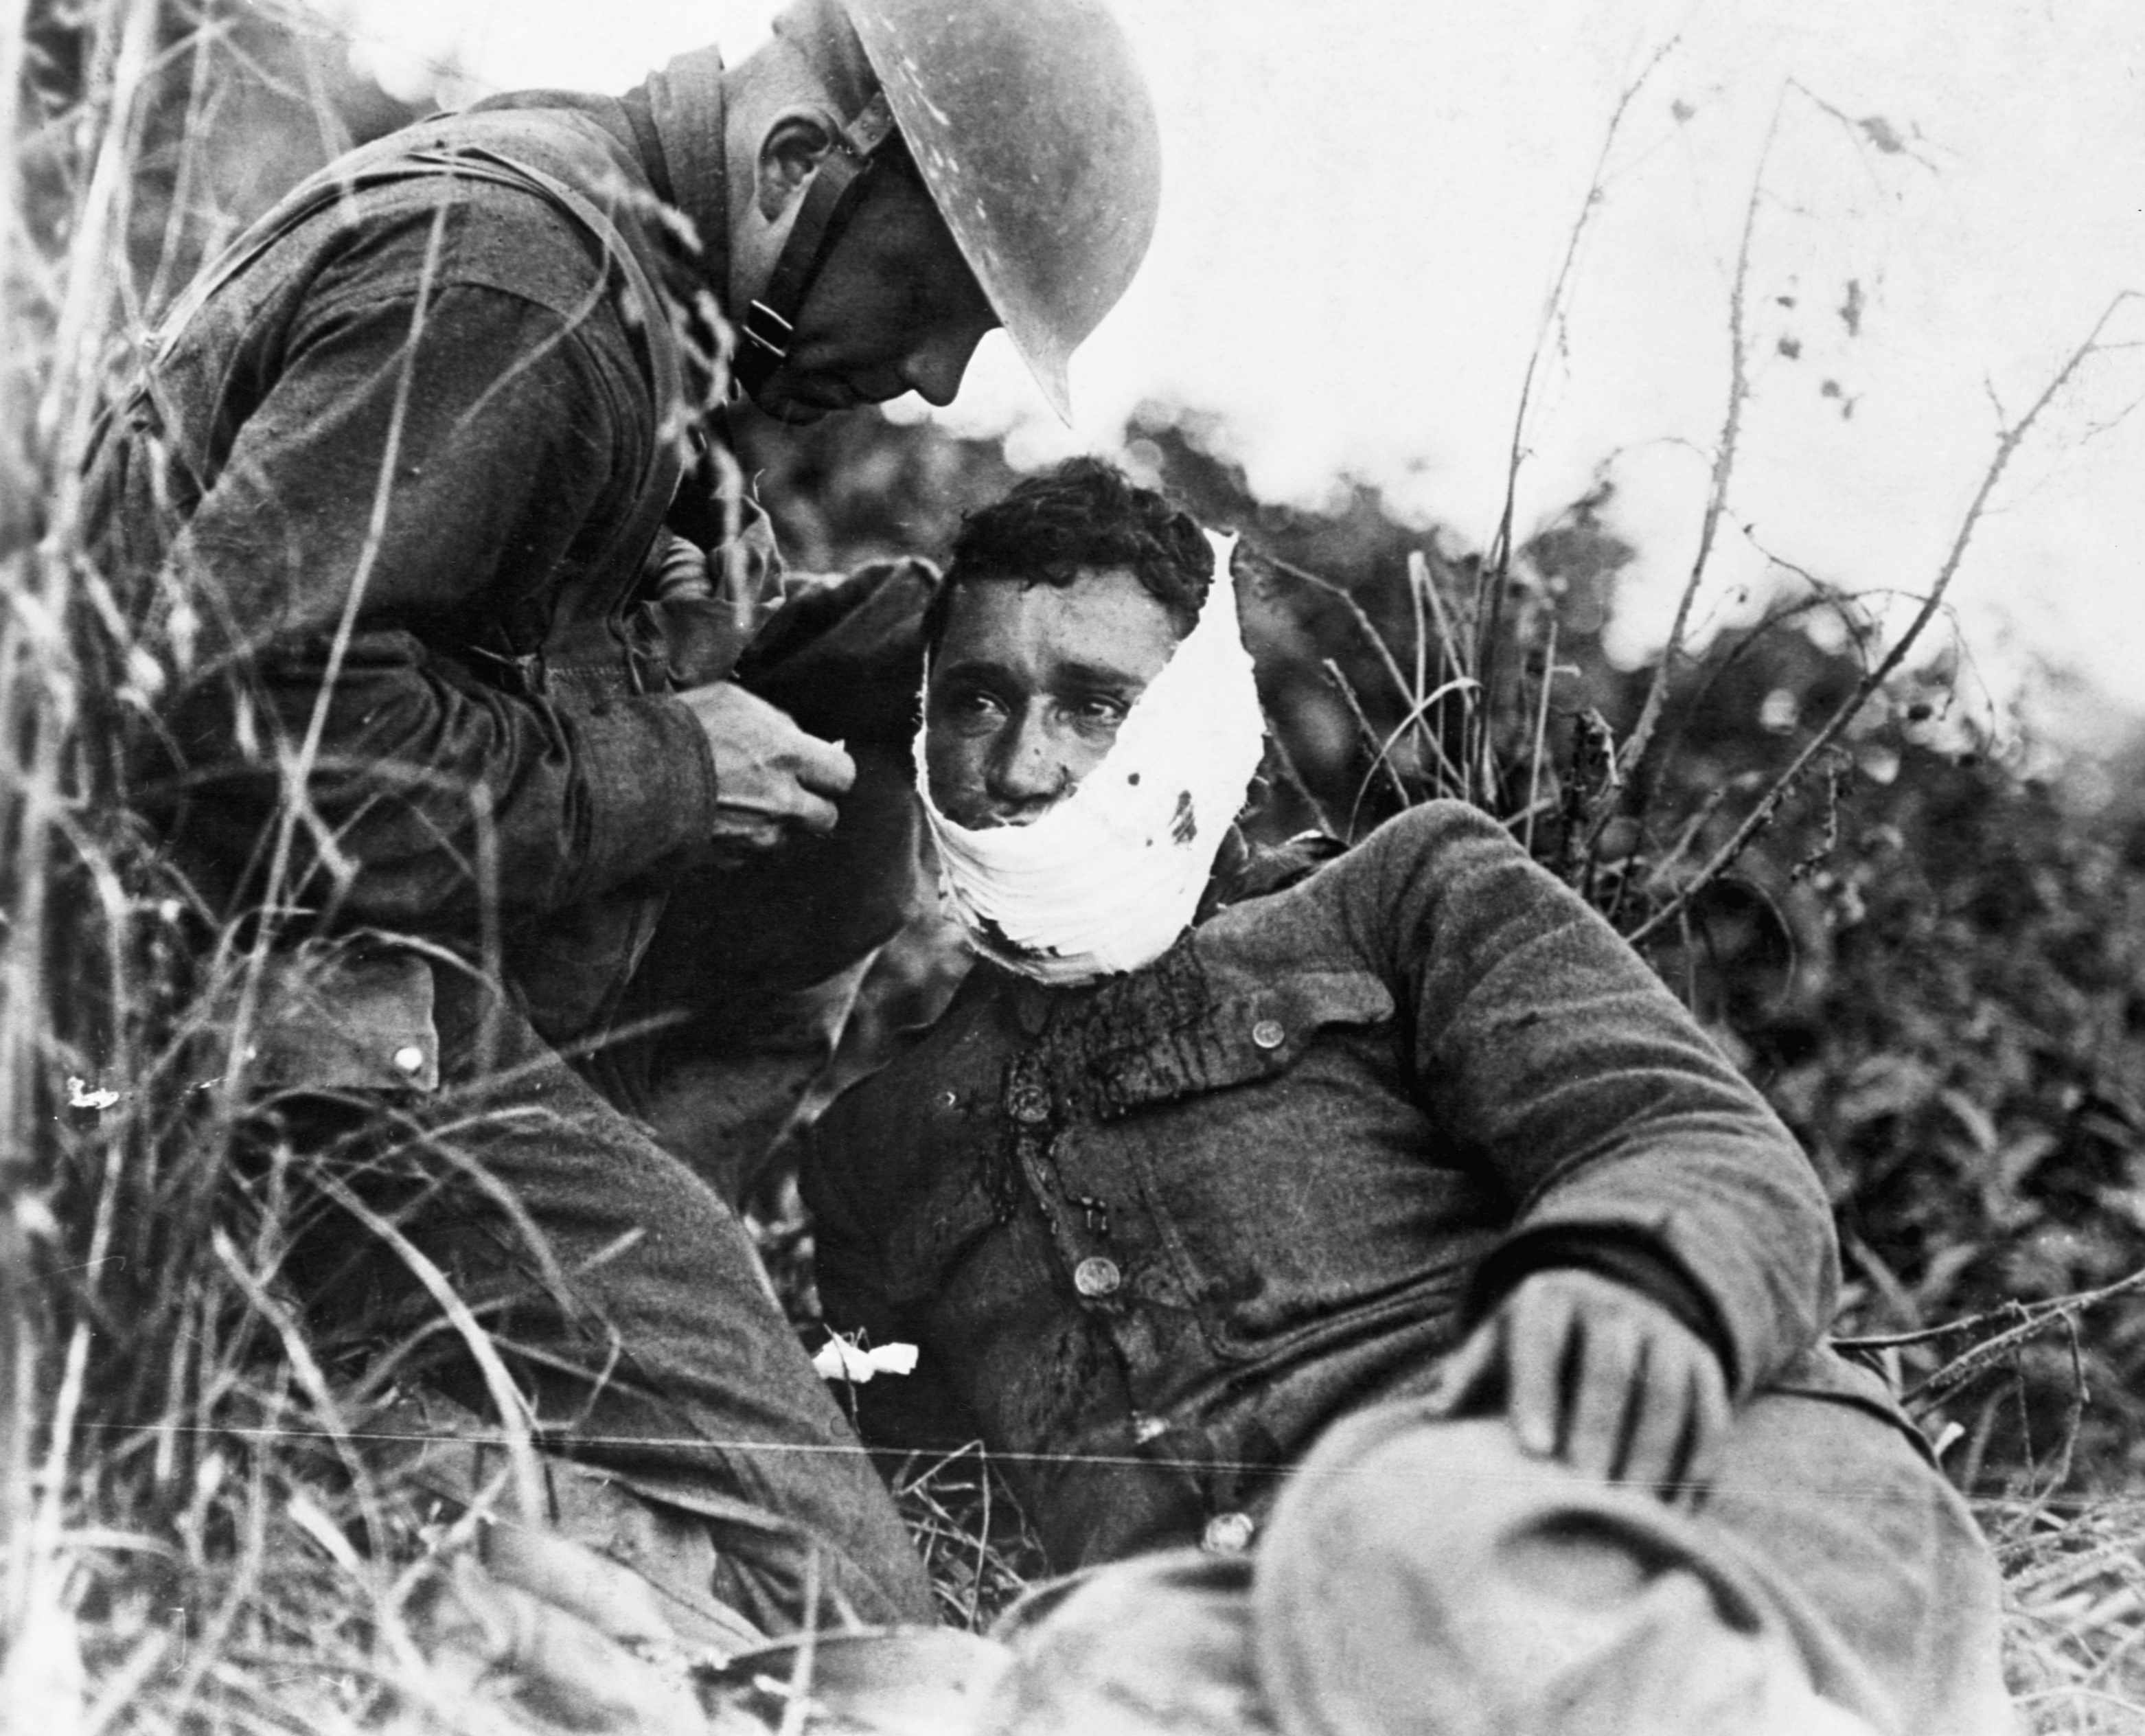 A wounded soldier of Company K, 110th Regiment Infantry, receives first-aid treatment from a comrade in Varennes-en-Argonne, France, 26 September 1918. (Photo by Corbis via Getty Images)